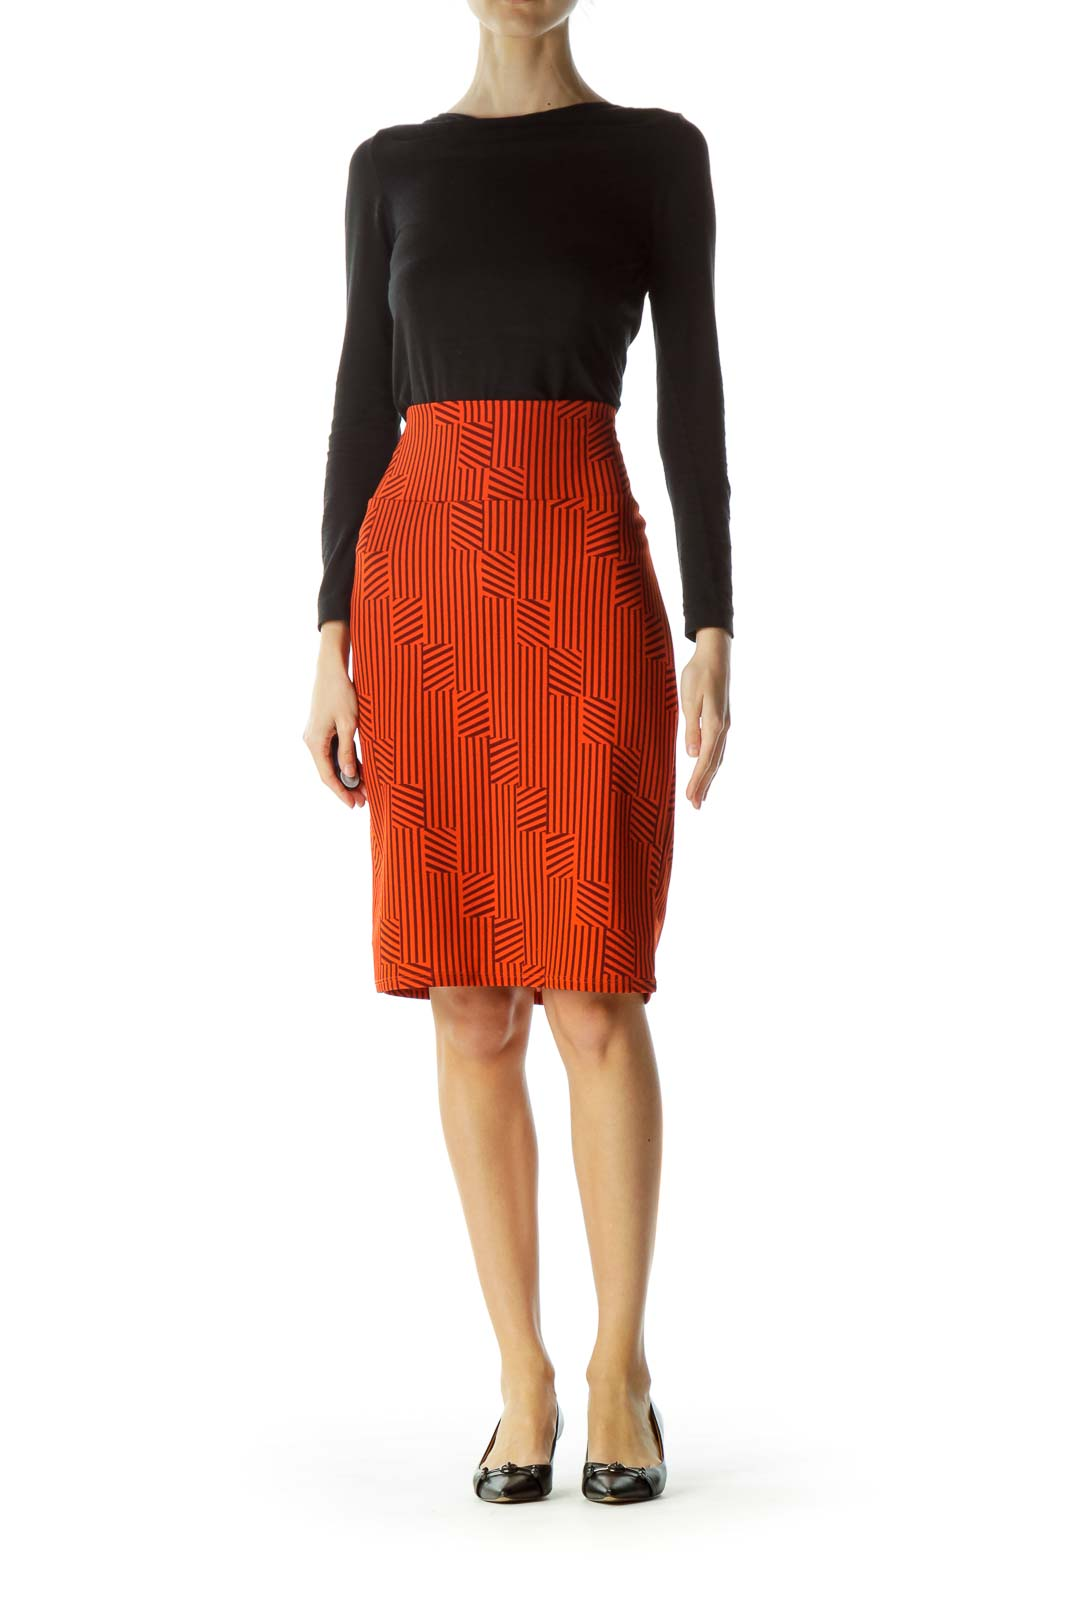 Orange Burgundy Geometric Print Pencil Skirt